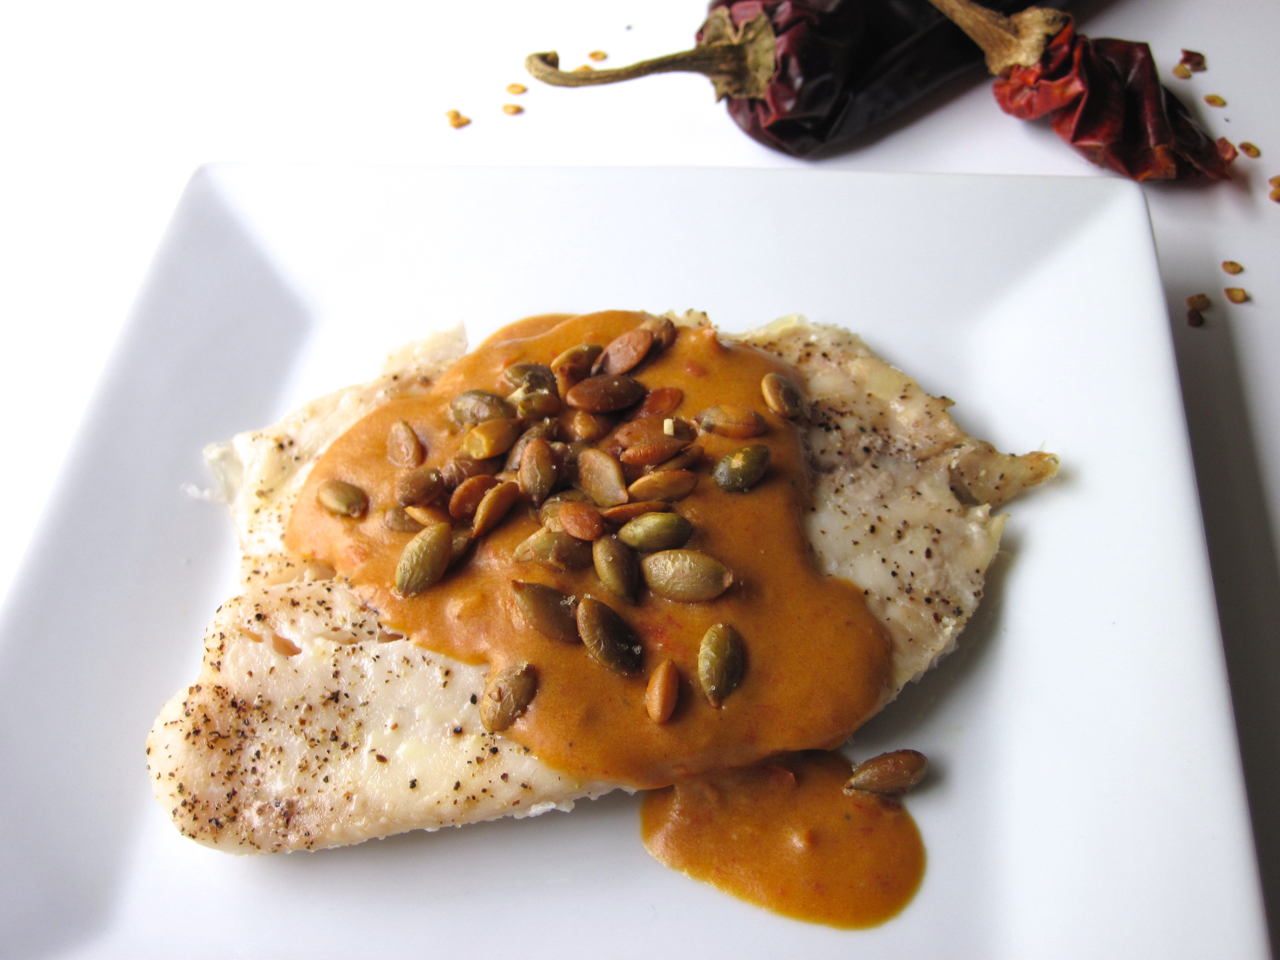 Pumpkin Curry Tilapia | Tilapia topped with toasted pumpkin seeds and pumpkin curry sauce made from homemade curry paste. | eatsomethingdelicious.com